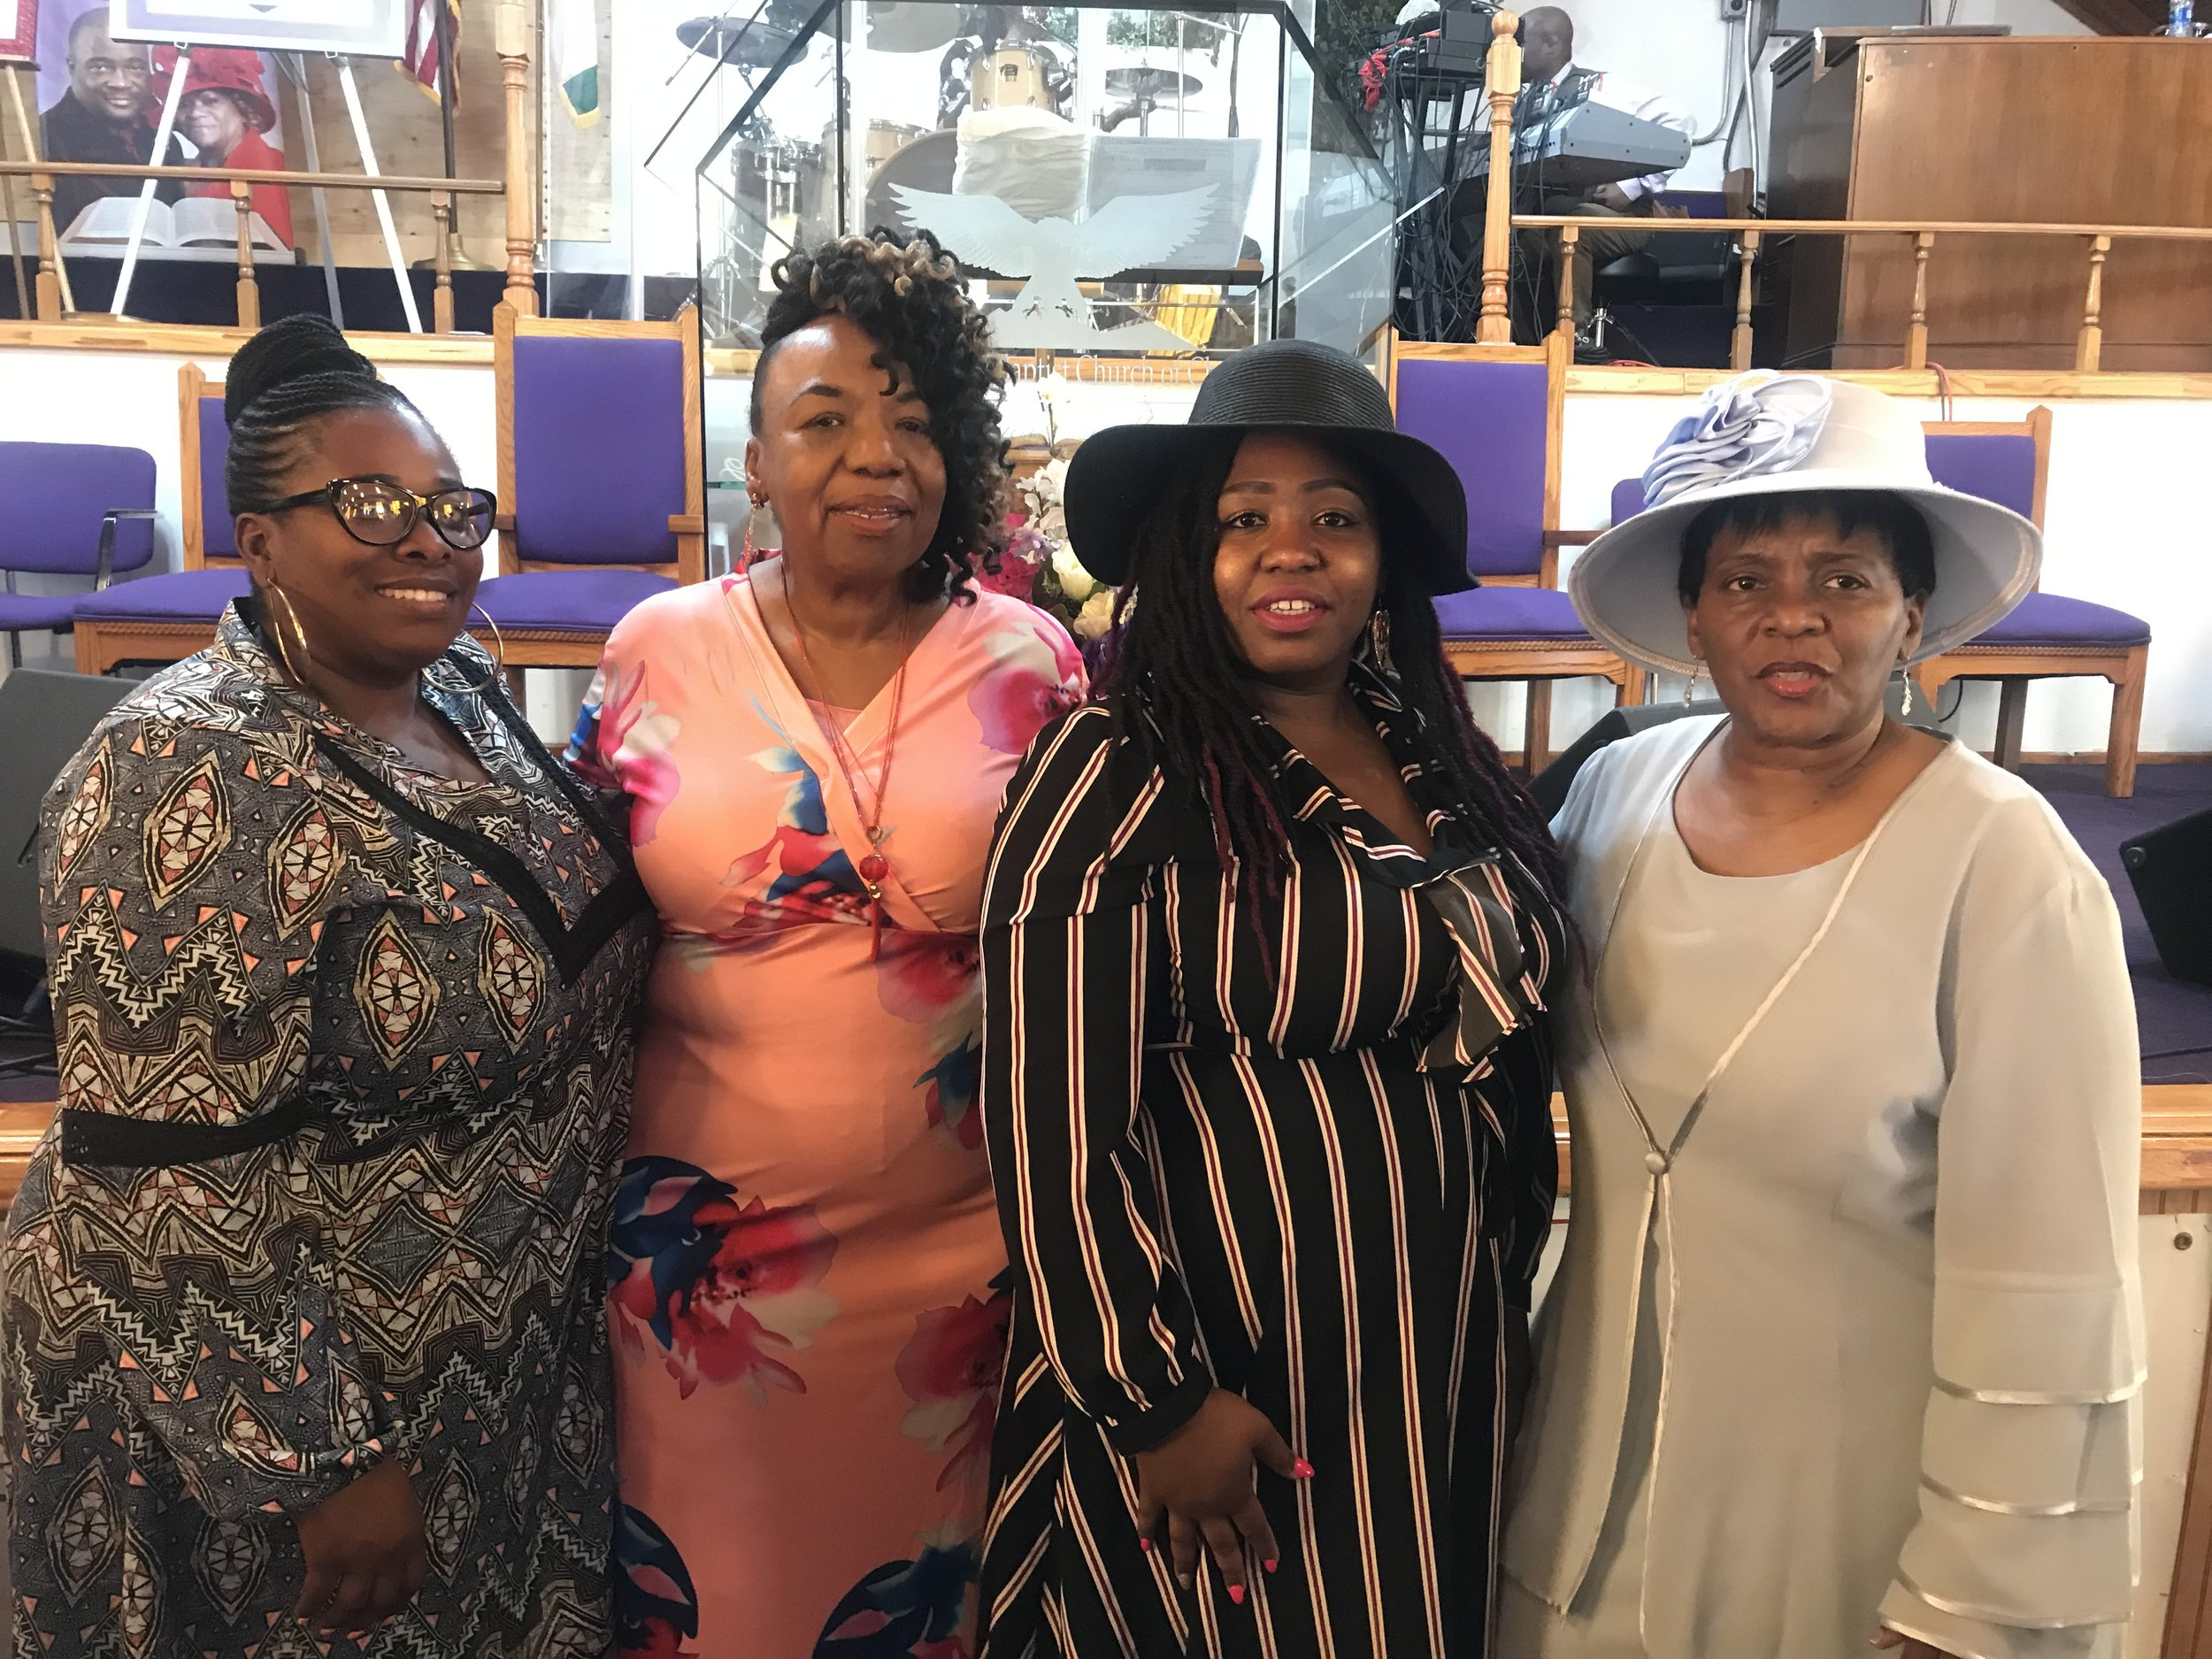 How will you ensure accountability for unjustified force if elected DA? Natasha Duncan, Gwen Carr, Victoria Davis, and Valerie Bell organize their communities to ask questions of local DA candidates, May 2019